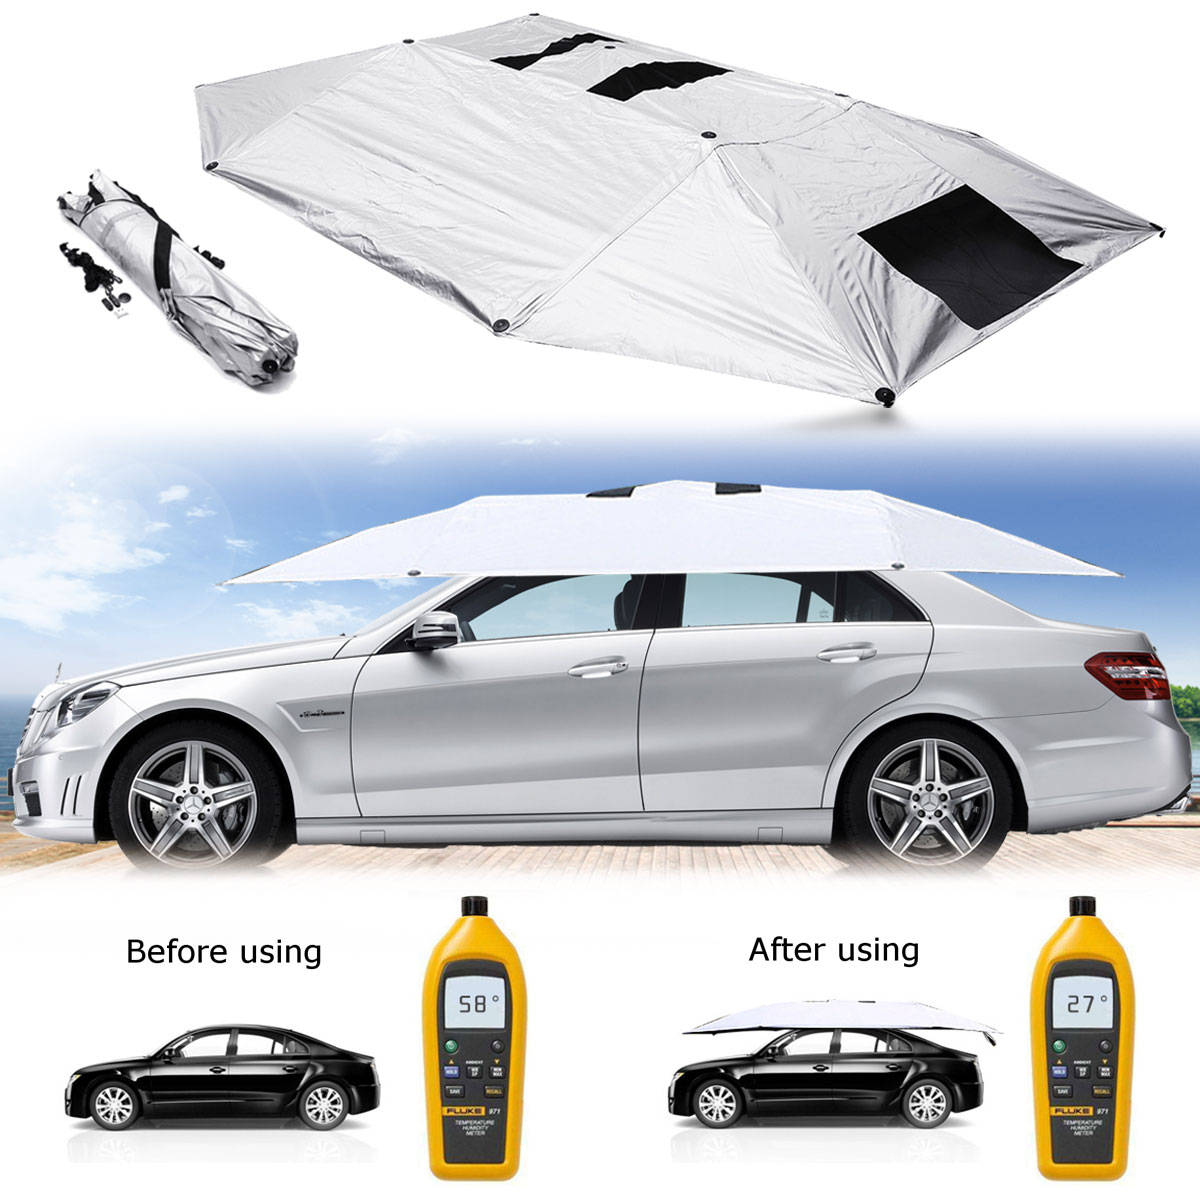 Portable Car Cover Umbrella Outdoor Removable Tent Umbrella Roof Cover UV Protection Kits Sunshade Cover Car Sun Shade Accessory foldable outdoor car tent umbrella sunshade roof cover cloth full automatic anti uv waterproof windproof replaceable car cover